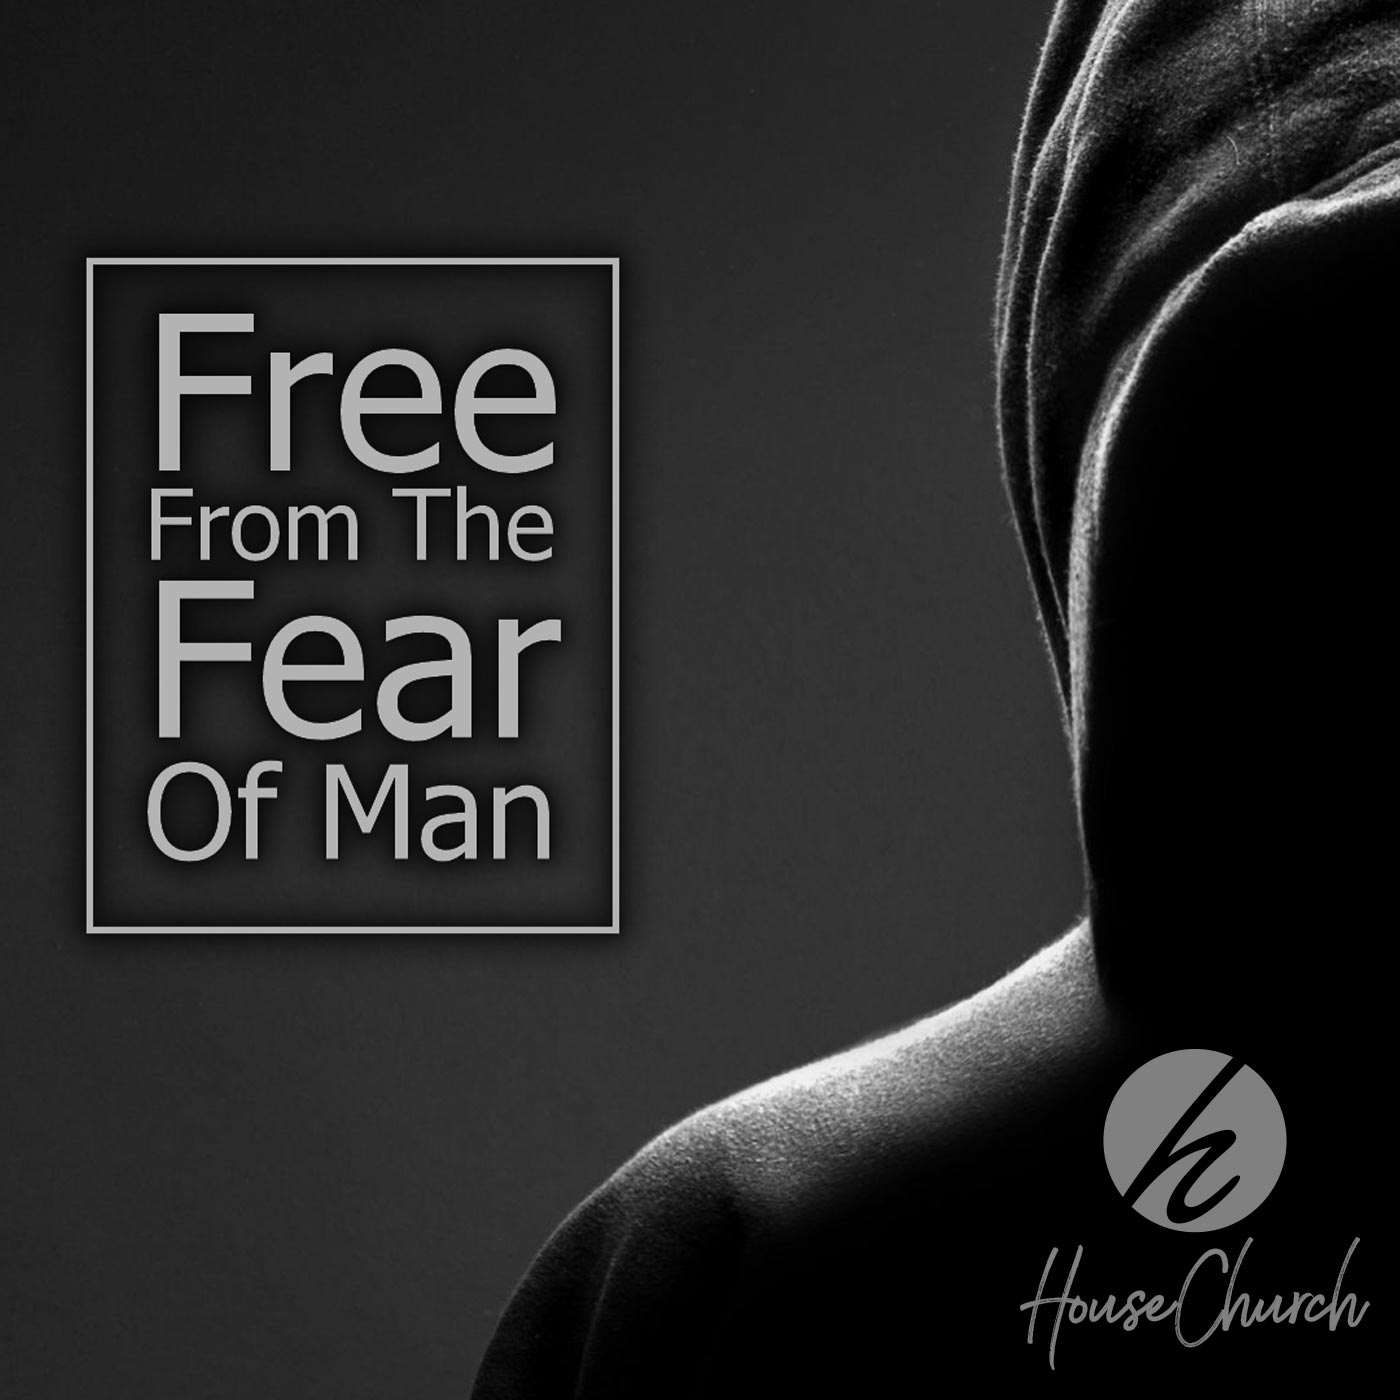 Free From The Fear Of Man